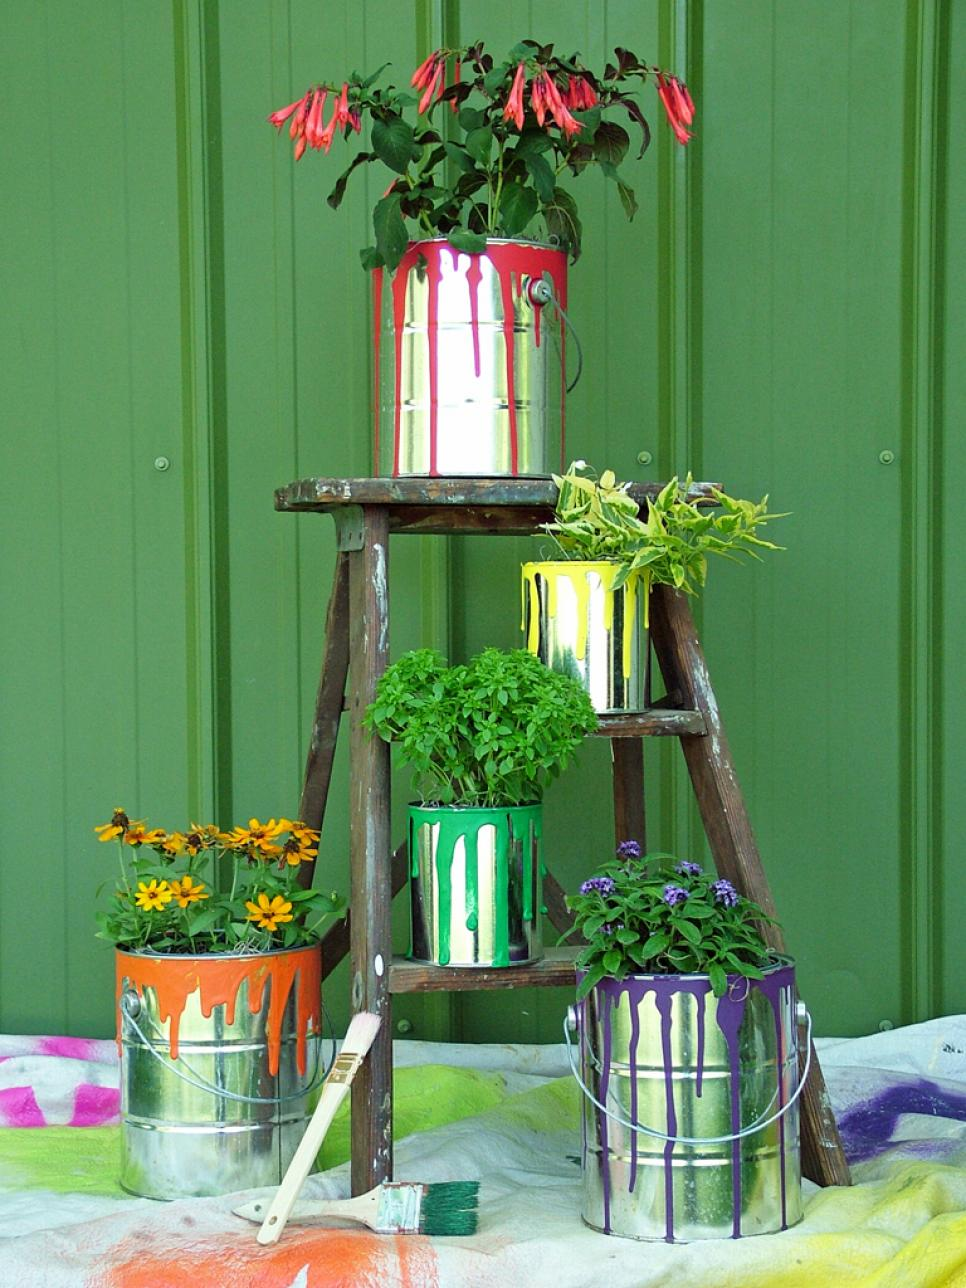 Paint cans with flowers